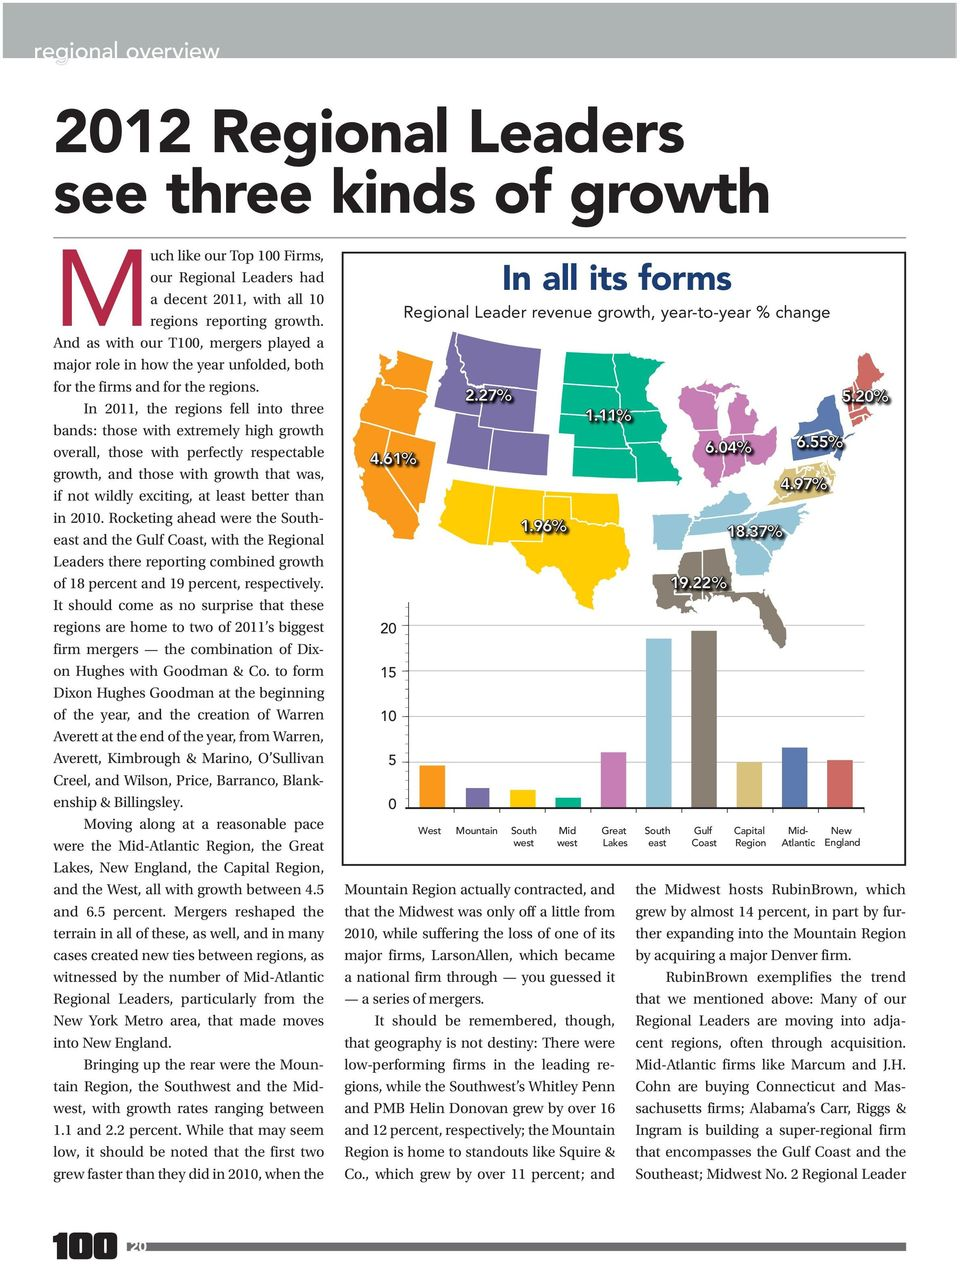 In 2011, the regions fell into three bands: those with extremely high growth overall, those with perfectly respectable growth, and those with growth that was, if not wildly exciting, at least better